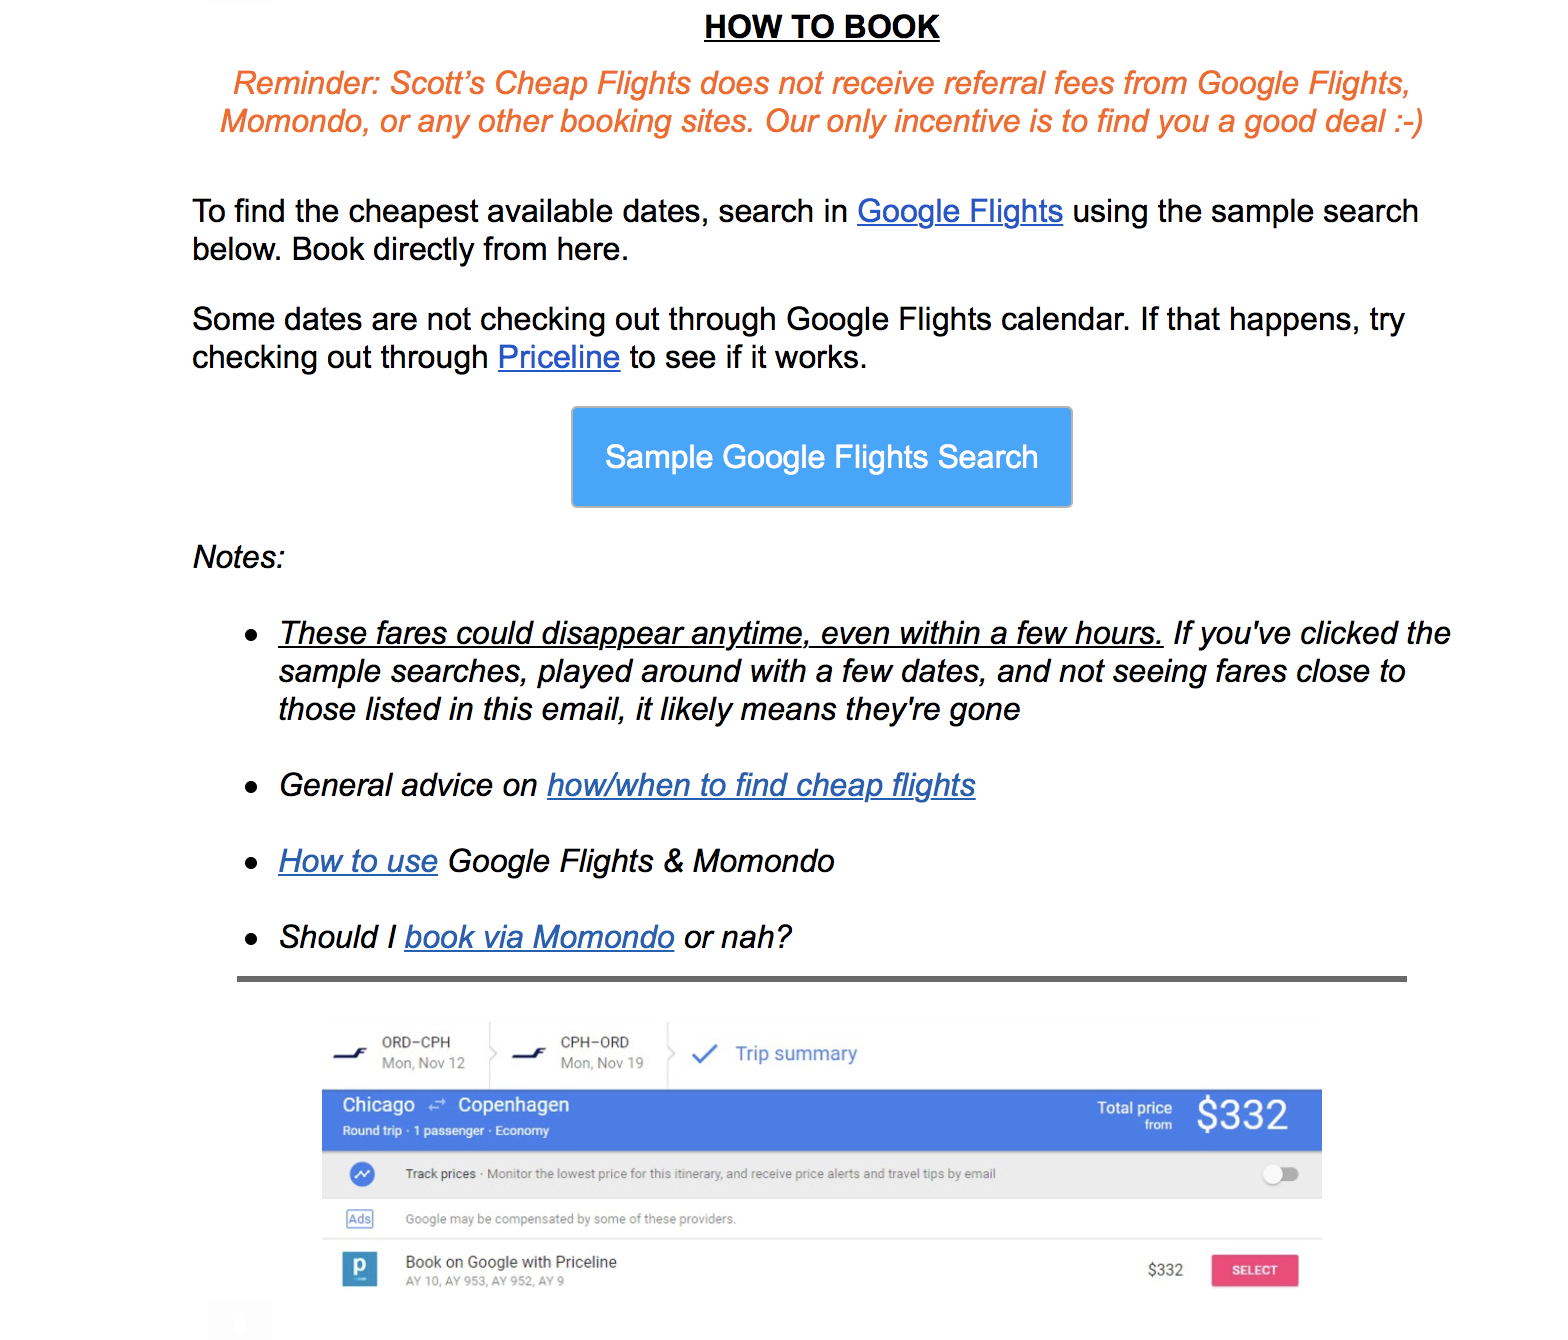 Scott's Cheap Flights Example